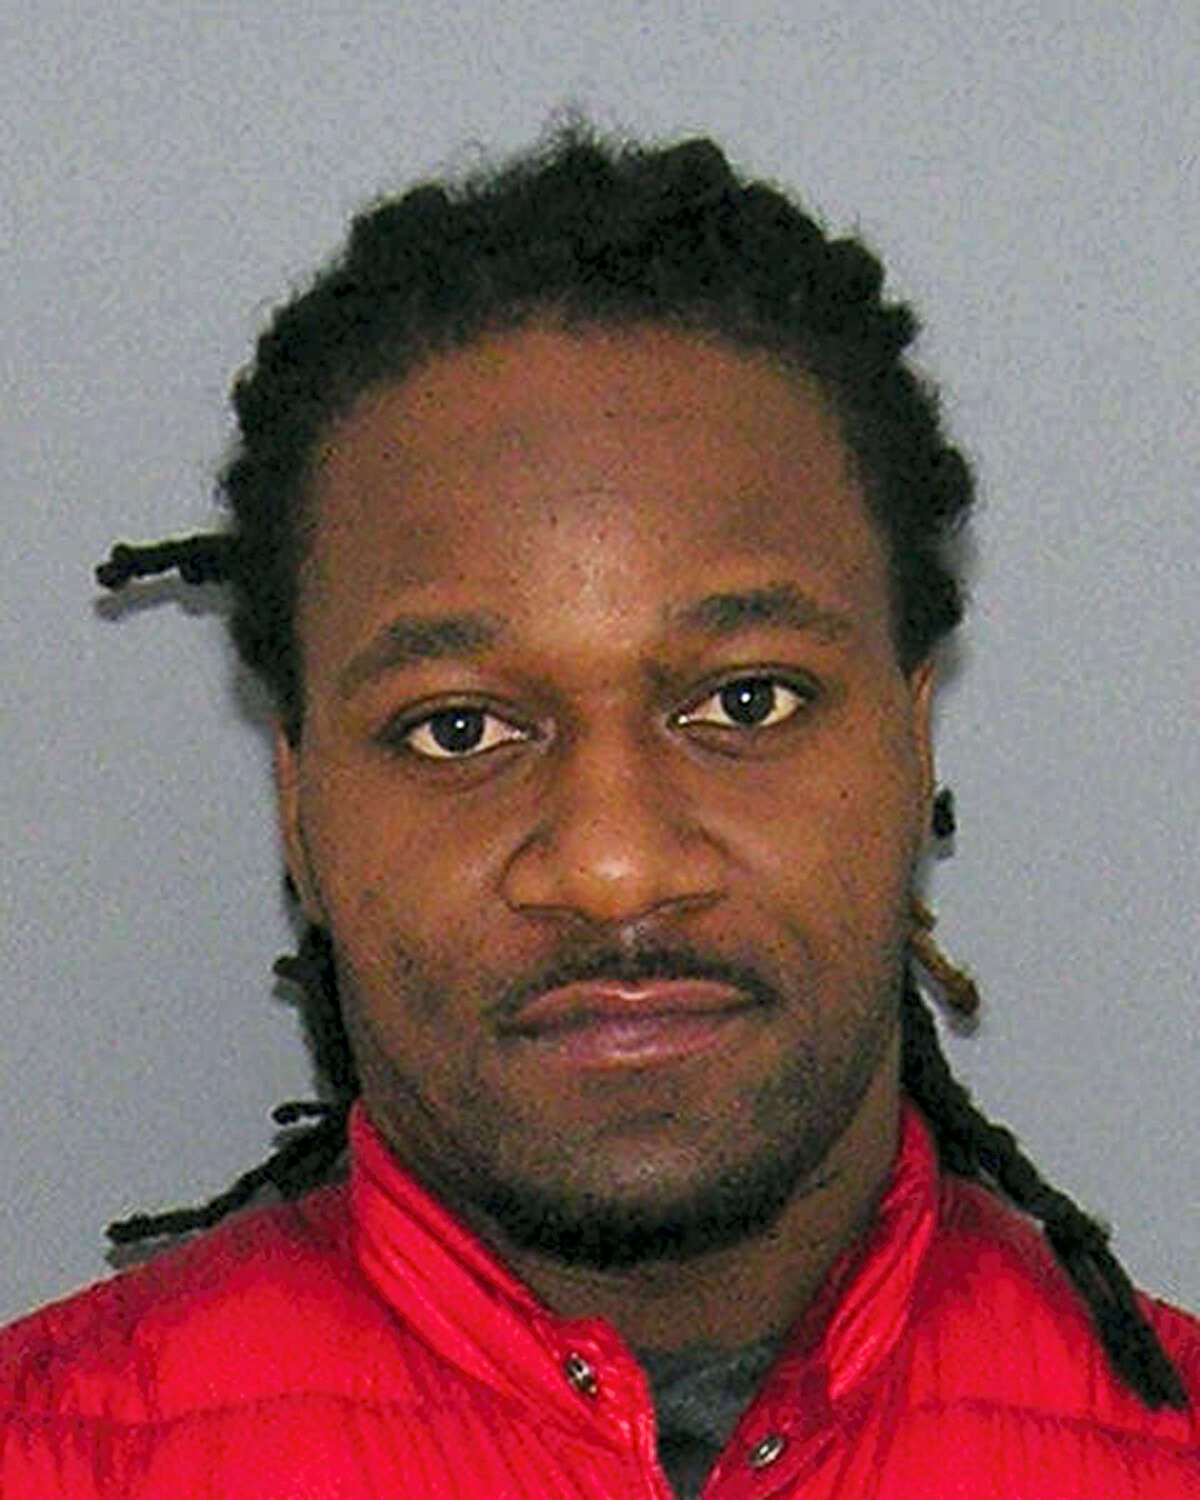 """This Jan. 3, 2017 photo provided by the Hamilton County Jail shows Cincinnati Bengals cornerback Adam """"Pacman"""" Jones, who is facing assault, disorderly conduct and other charges after being arrested in Cincinnati's downtown entertainment district."""